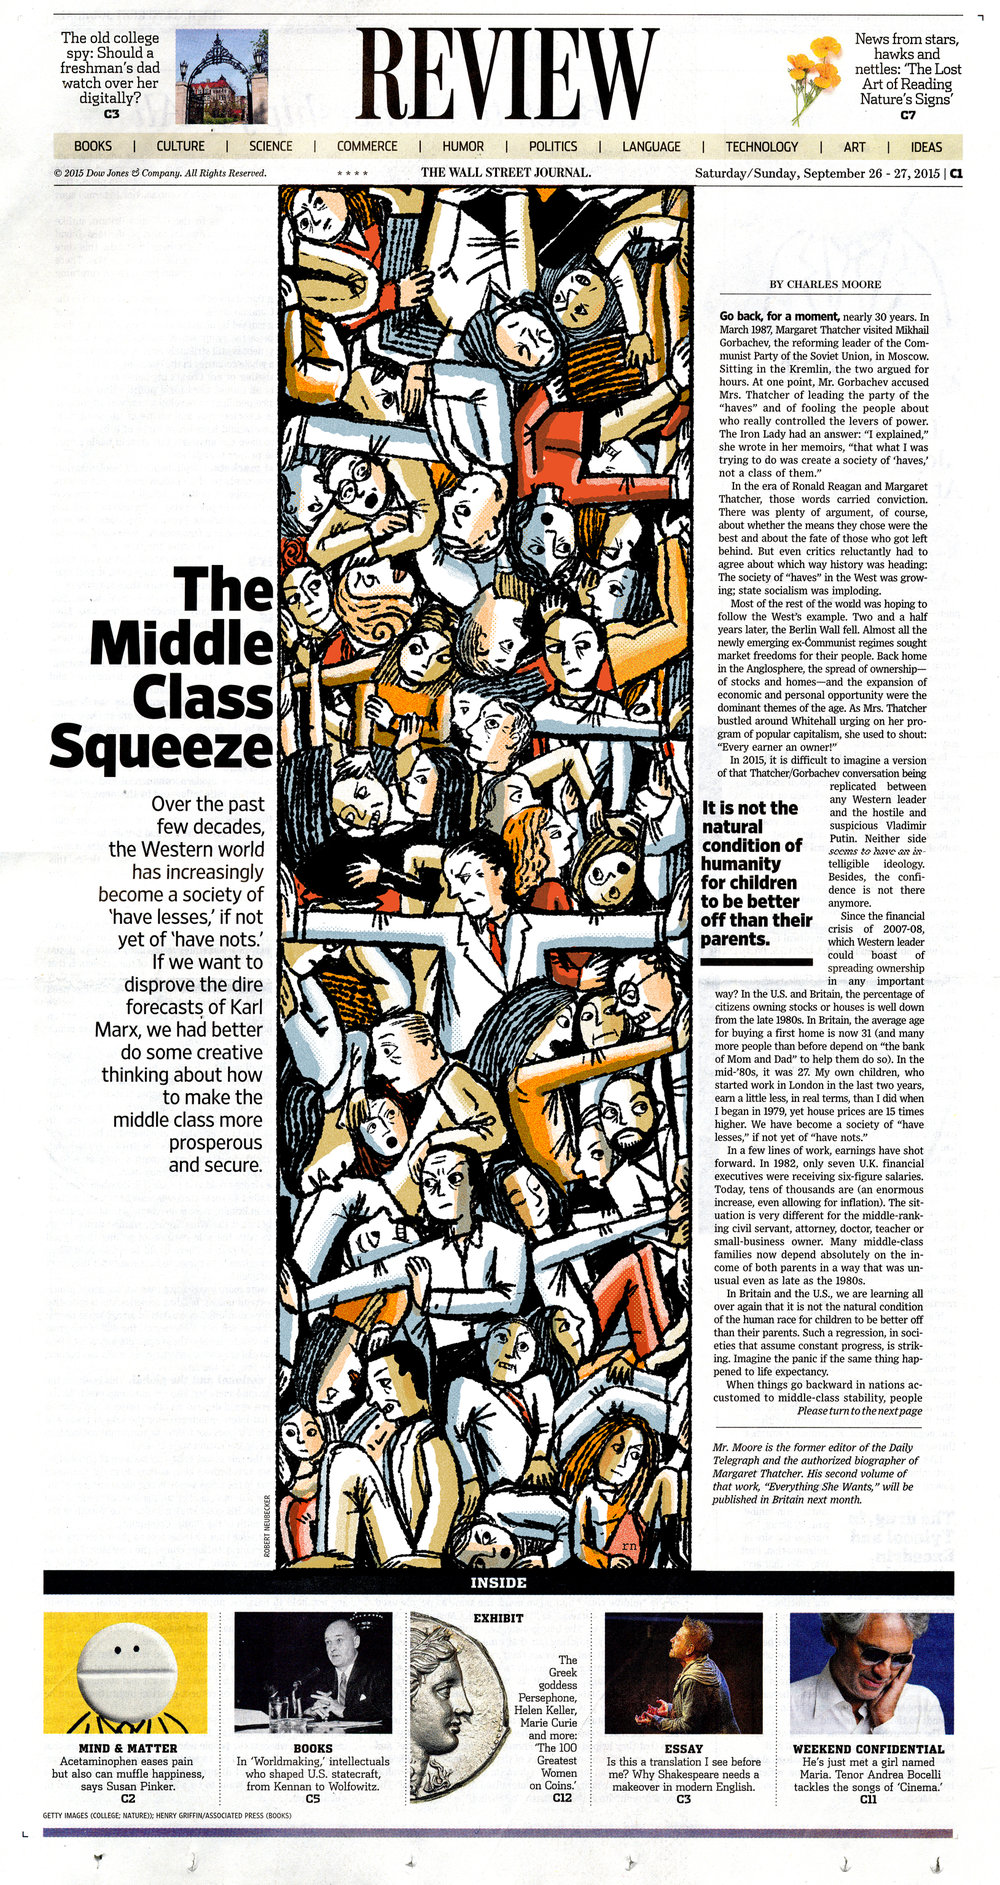 WSJ- Keith Webb art directed this. Always great.